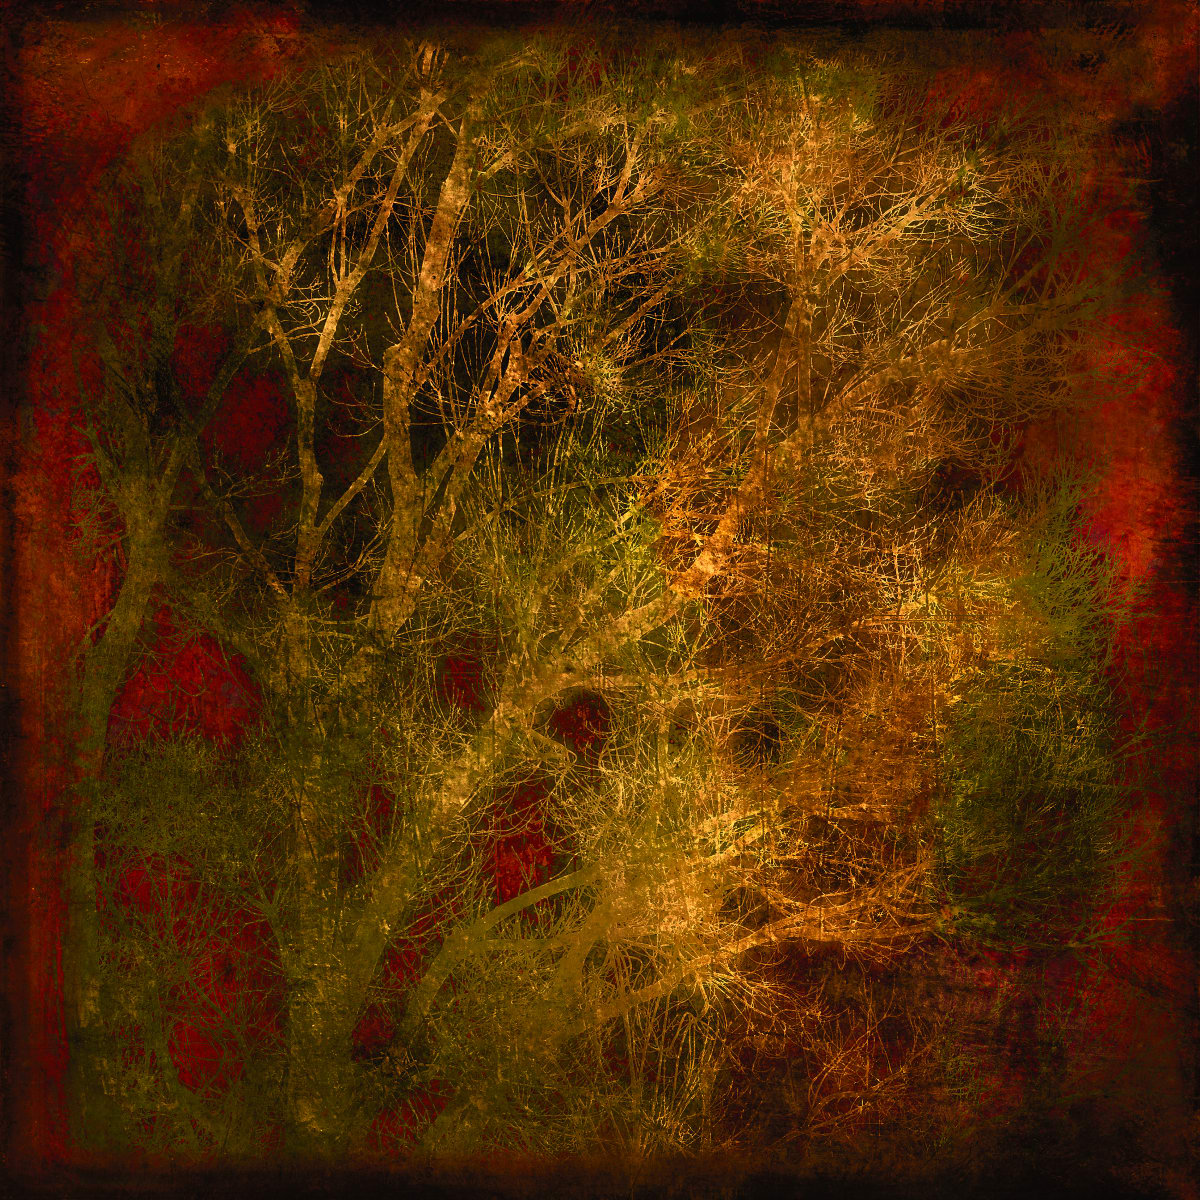 Winter Trees in Gold and Red